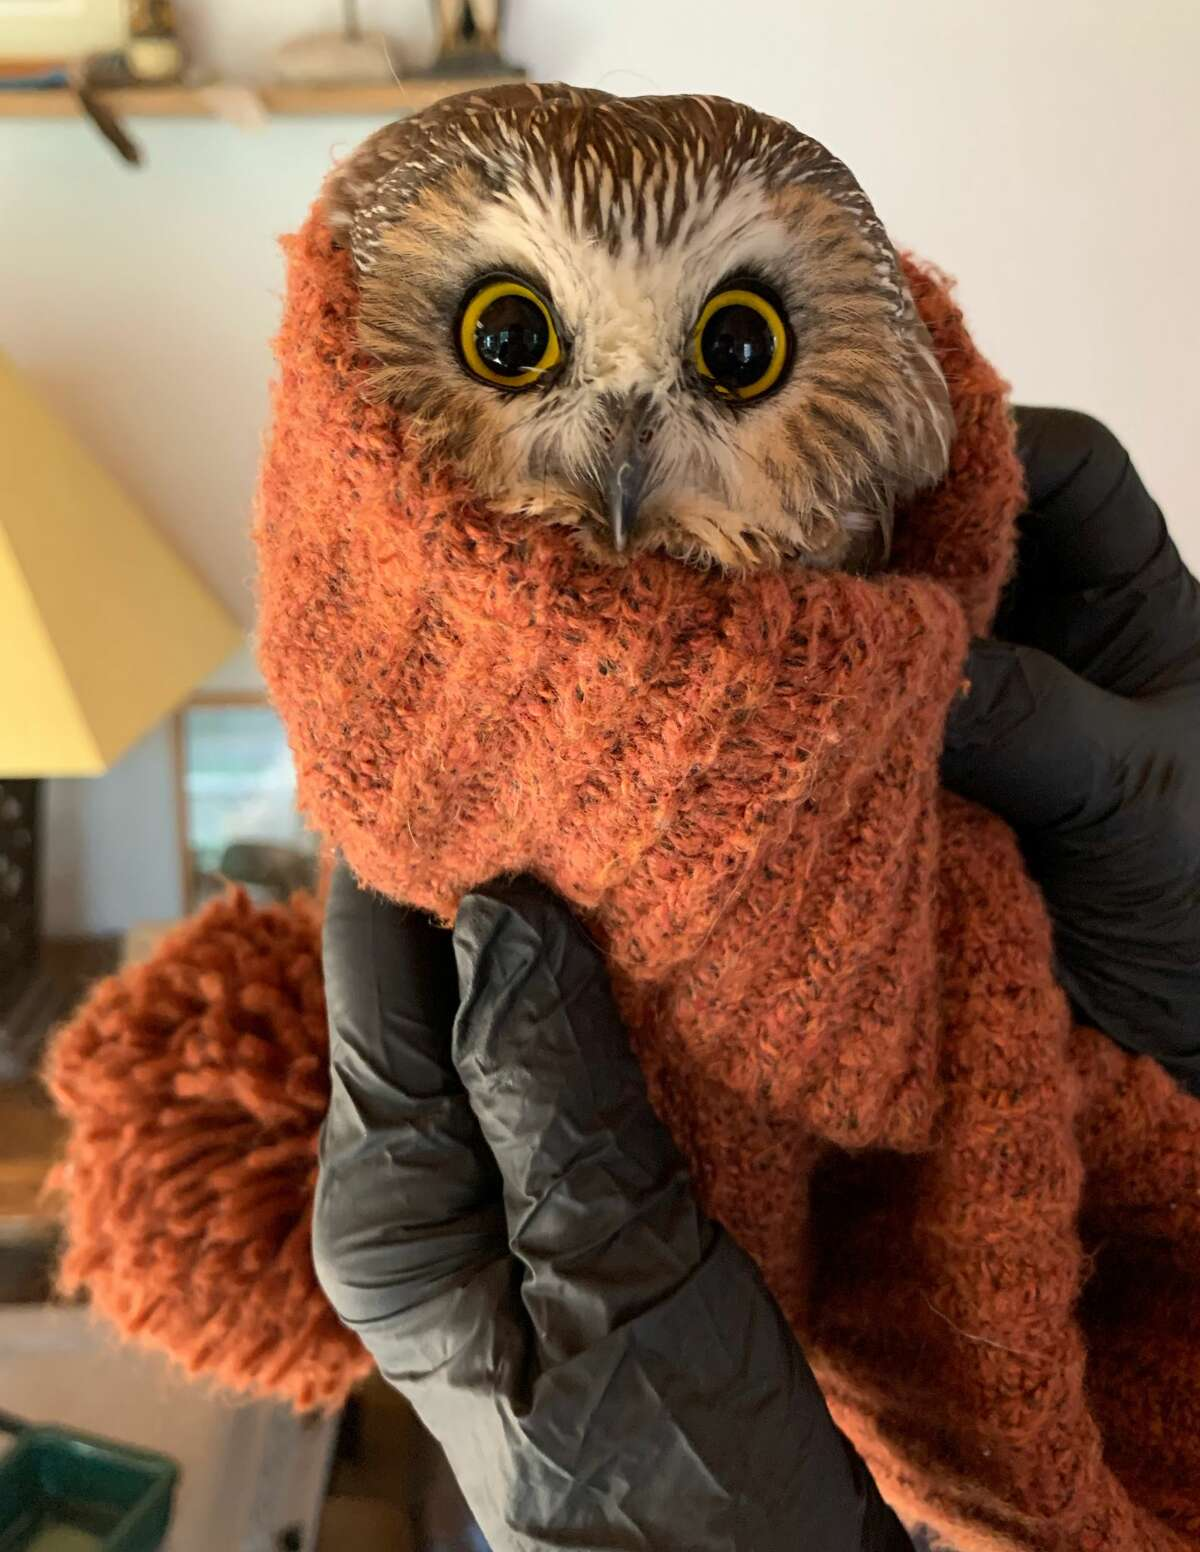 In this photo provided by the Ravensbeard Wildlife Center, Ravensbeard Director and founder Ellen Kalish holds a Saw-whet owl at the center in Saugerties, N.Y., Wednesday, Nov. 18, 2020. A worker helping to get the Rockefeller Center Christmas tree in New York City found the tiny owl among the tree's massive branches on Monday, Nov. 16. Now named Rockefeller, the owl was brought to the Ravensbeard Wildlife Center for care. (Lindsay Possumato/Ravensbeard Wildlife Center via AP)